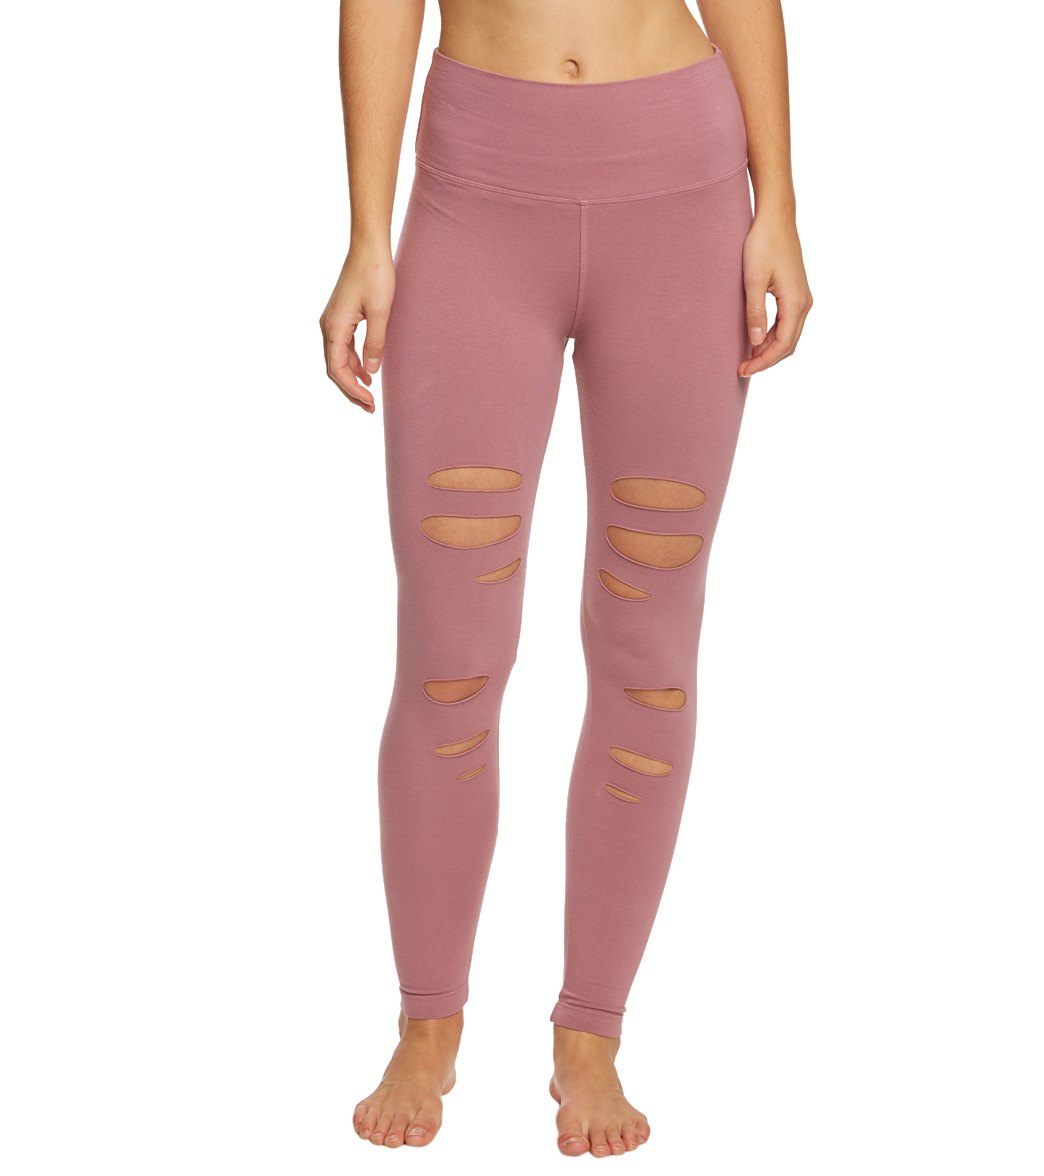 Hard Tail Flat Waist Laser Ankle Yoga Leggings - Dusty Rose Cotton